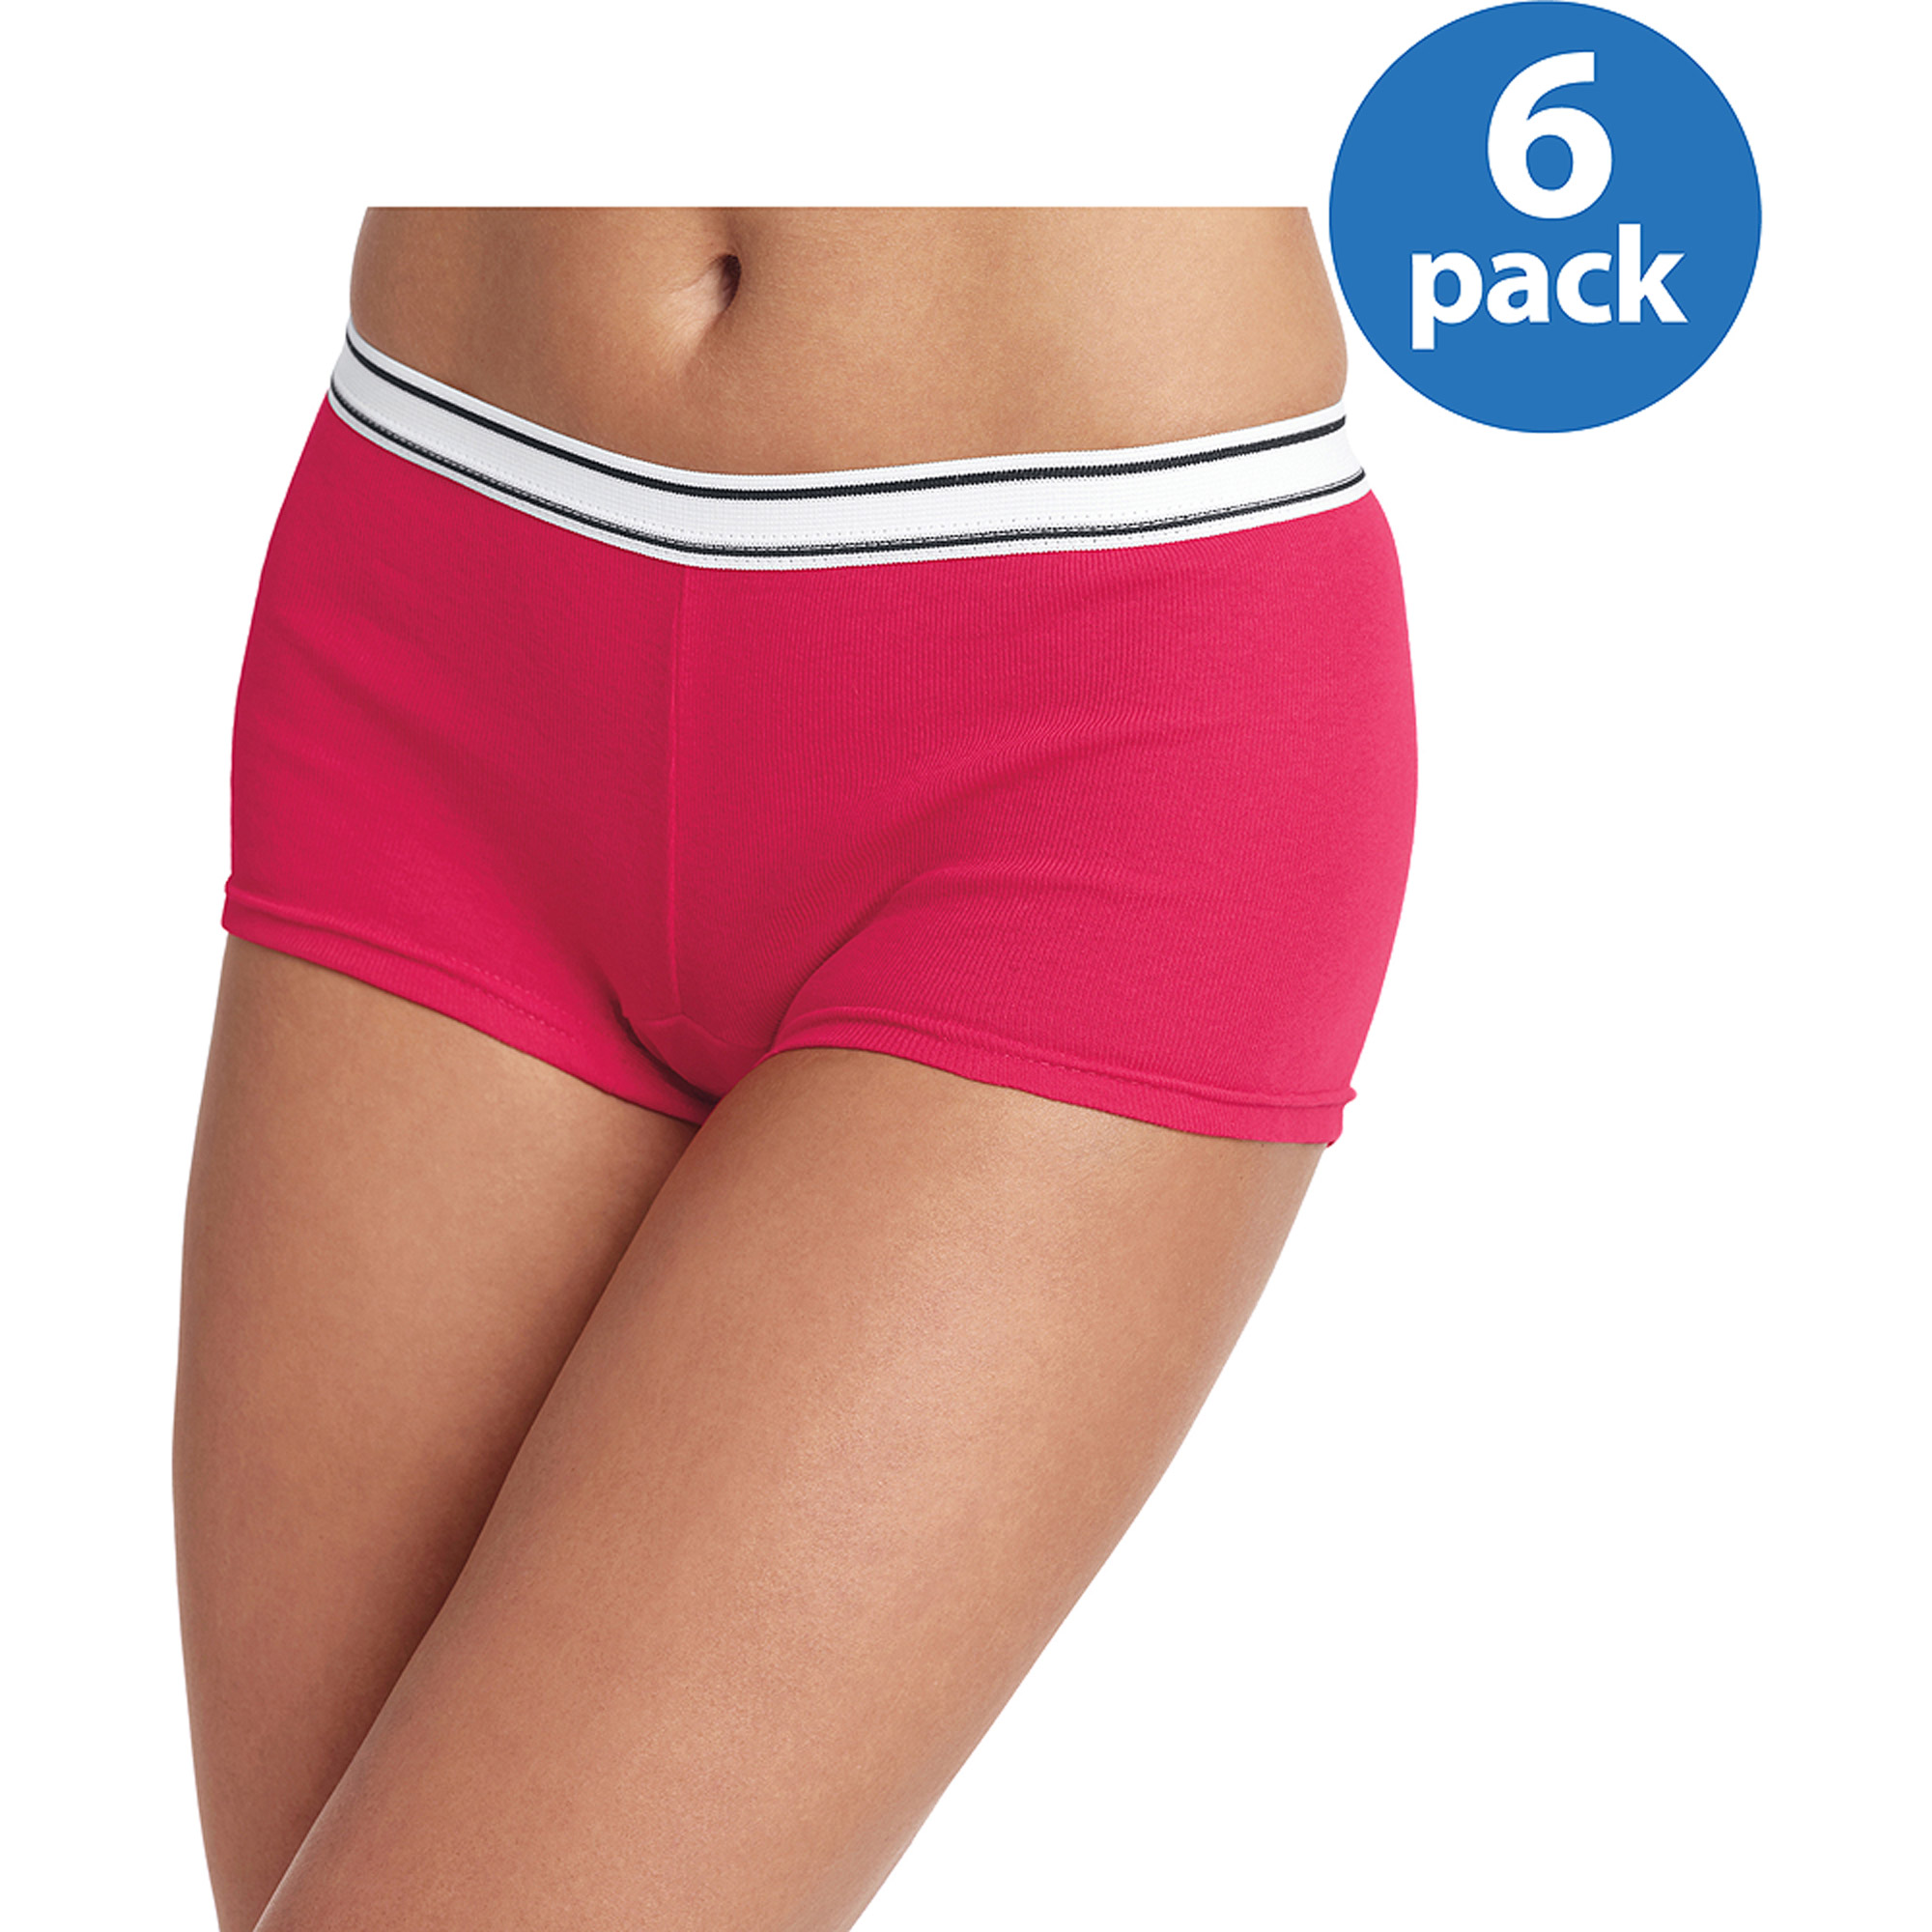 a688c174425 Hanes - Women s Cotton Stretch Boyshort Panties - 3 Pack - Walmart.com